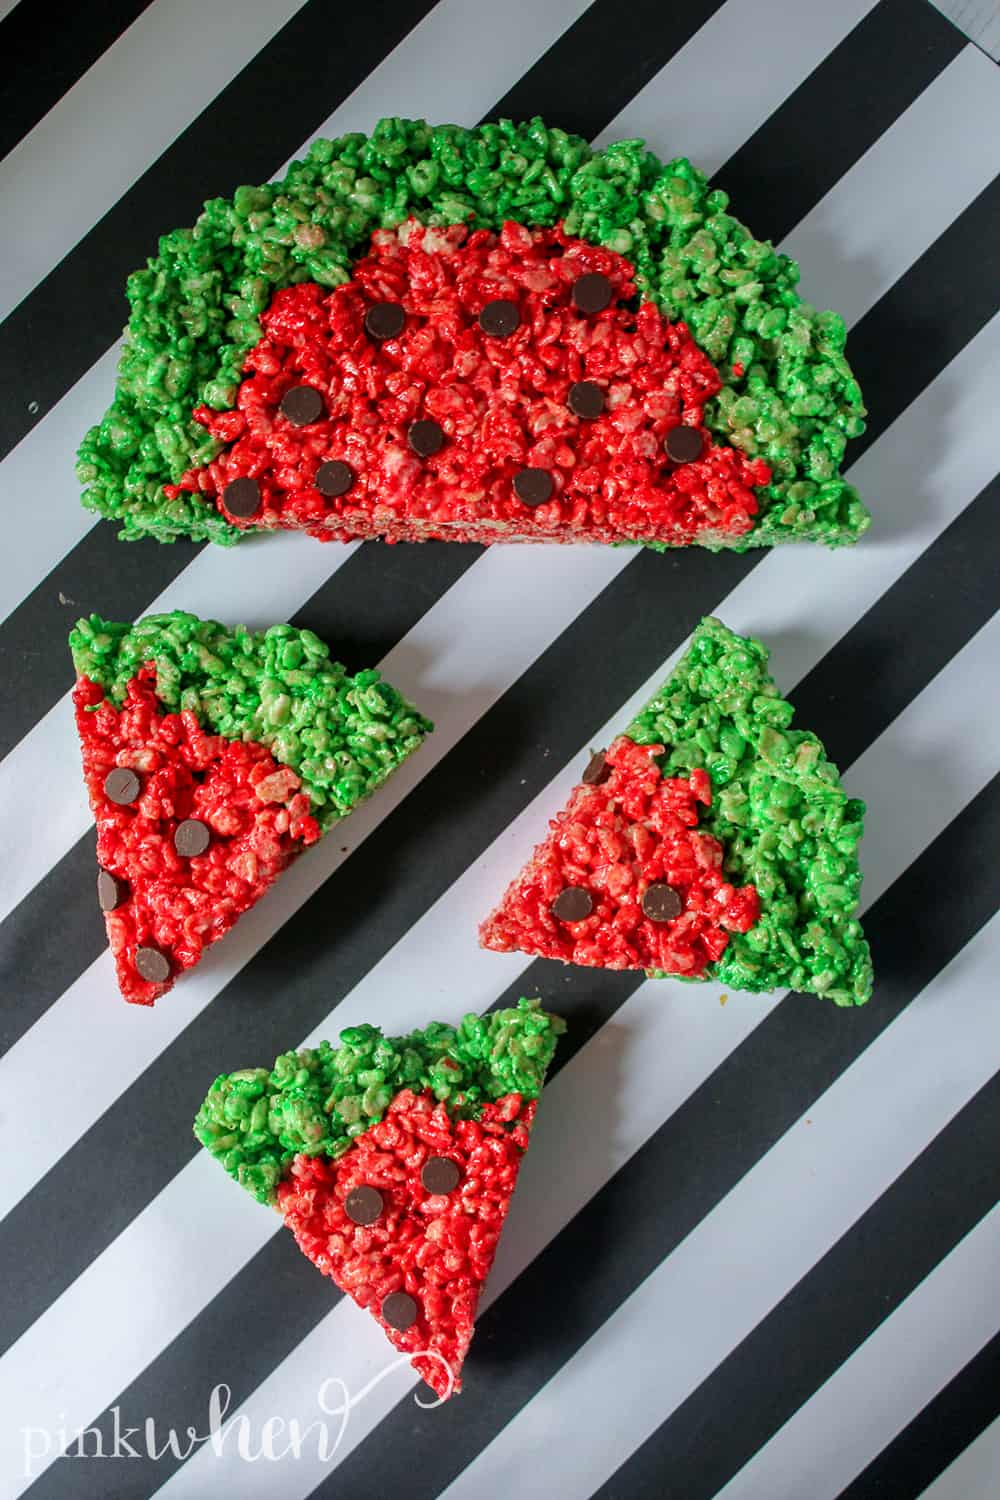 This is a new favorite no bake dessert that has been a hit in our household! These watermelon rice krispie treats are gooey, sweet, delicious, and so much fun! They are sure to be a huge hit with the kids and they will have a blast making them.